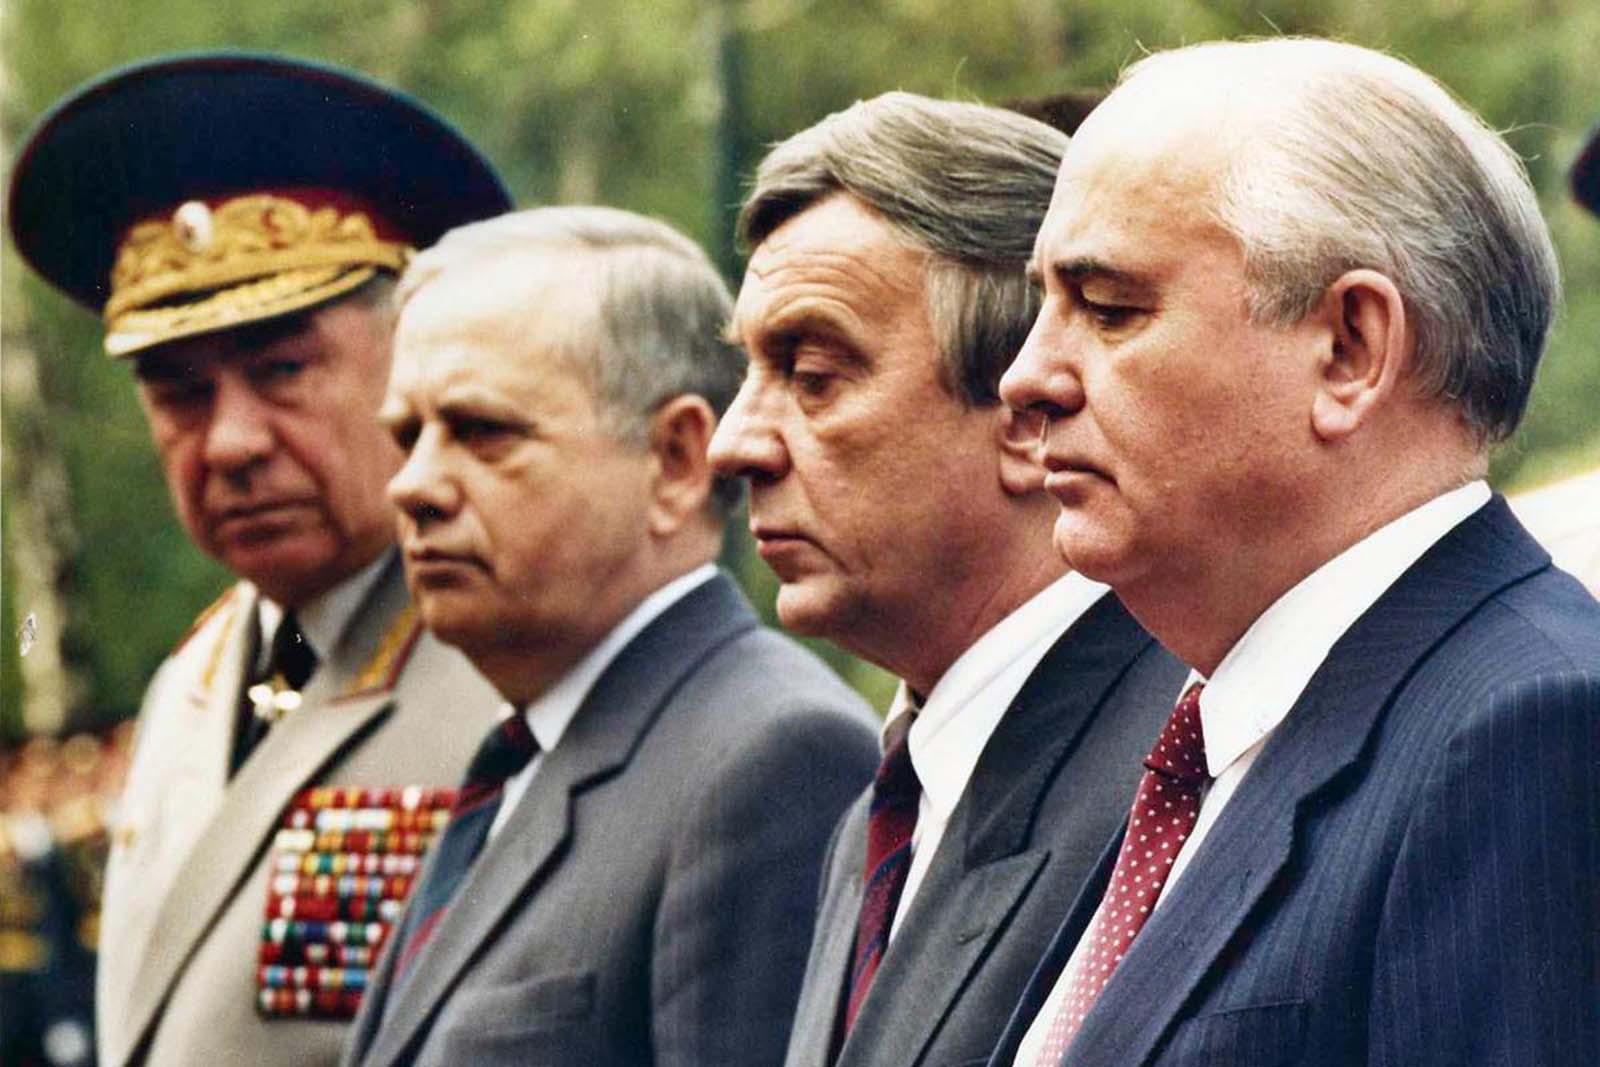 A few weeks before the Coup, Mikhail Gorbachev stands surrounded by his so-called friends, all of them soon to be leaders of the August Coup against him. Vice President Gennady Yanayev, second from right, became the most visible of the Coup leaders. Here, they are lighting the flame at the tomb of the unknown soldier outside the Kremlin wall in May of 1991.